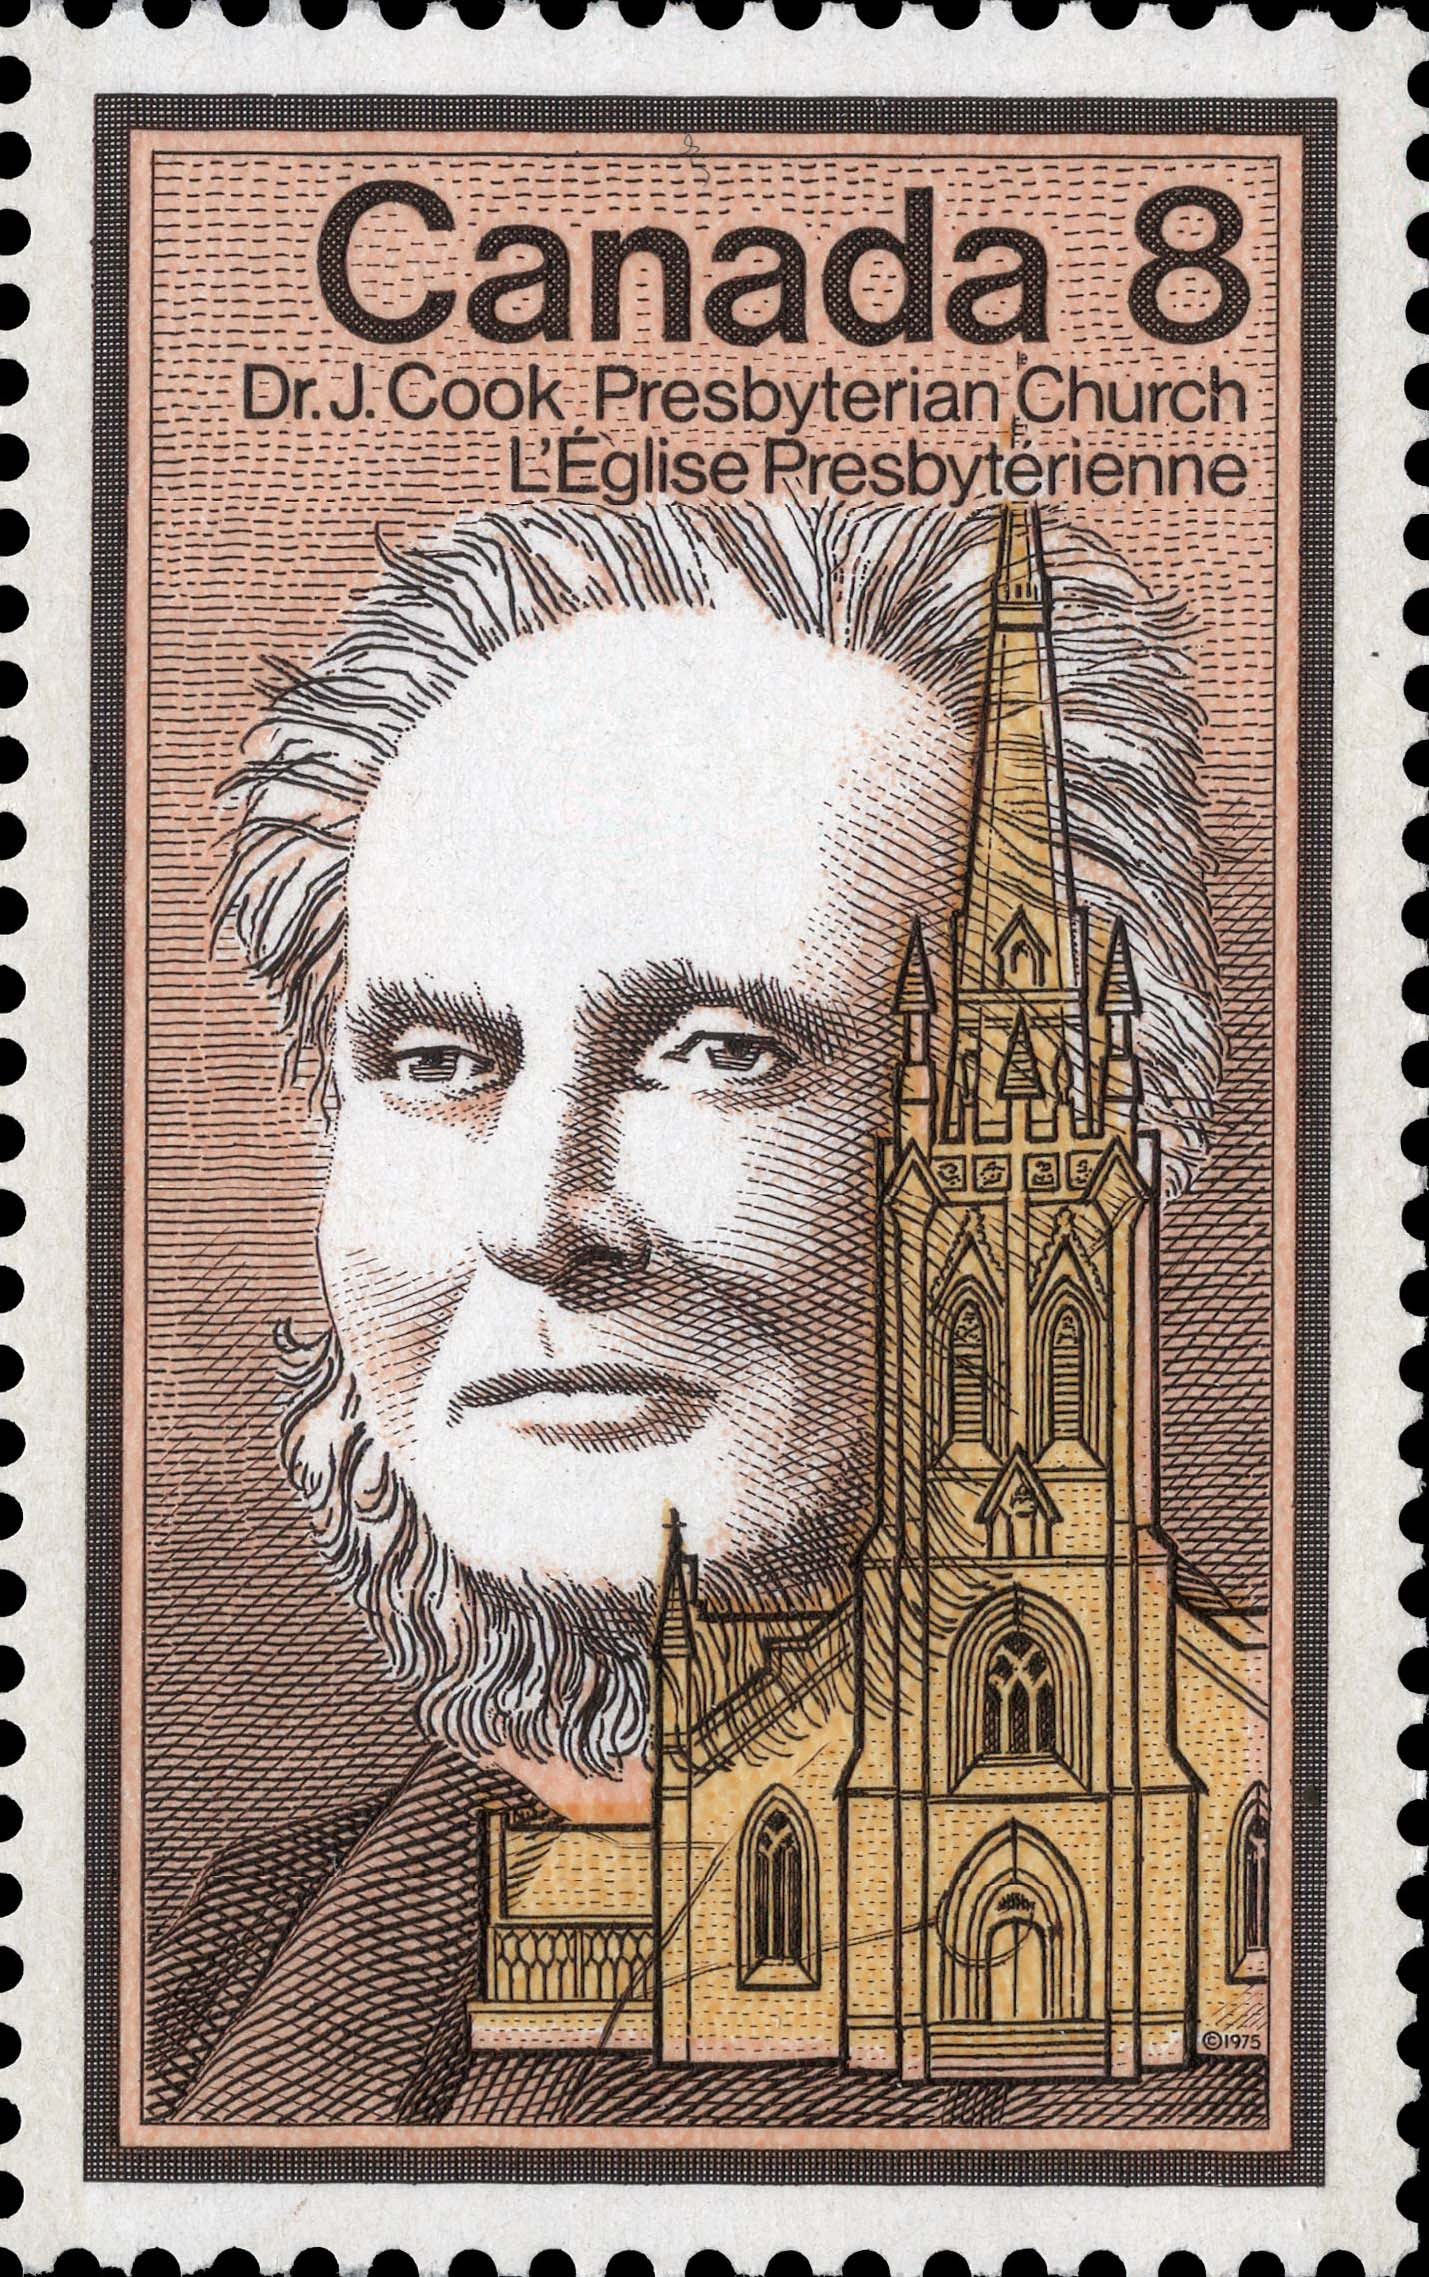 Dr. J. Cook, Presbyterian Church Canada Postage Stamp